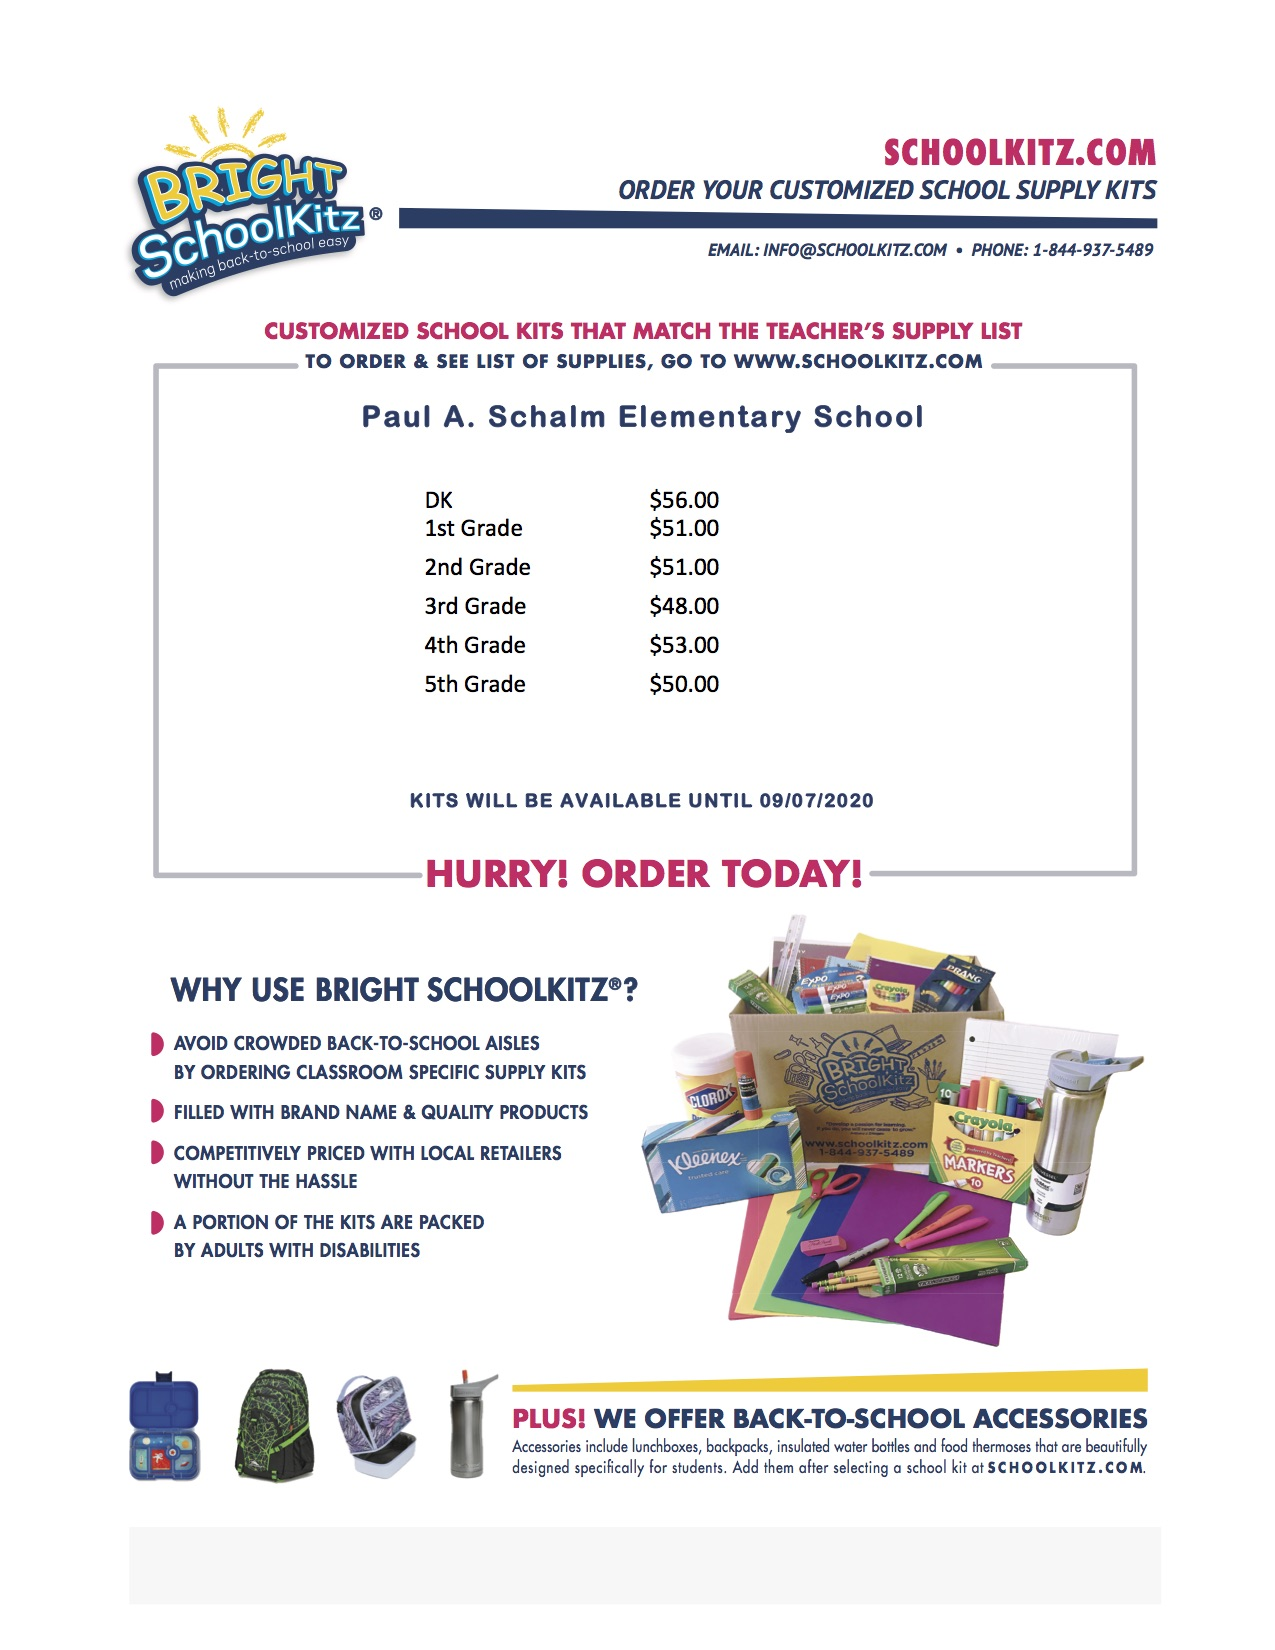 SCHOOLKITZ.COM ORDER YOUR CUSTOMIZED SCHOOL SUPPLY KITS EMAIL: INFO@SCHOOLKITZ.COM • PHONE: 1-844-937-5489 CUSTOMIZED SCHOOL KITS THAT MATCH THE TEACHER'S SUPPLY LIST TO ORDER & SEE LIST OF SUPPLIES, GO TO WWW.SCHOOLKITZ.COM Paul A. Schalm Elementary School DK 1st Grade 2nd Grade 3rd Grade 4th Grade 5th Grade $56.00 $51.00 $51.00 $48.00 $53.00 $50.00 KITS WILL BE AVAILABLE UNTIL 09/07/2020